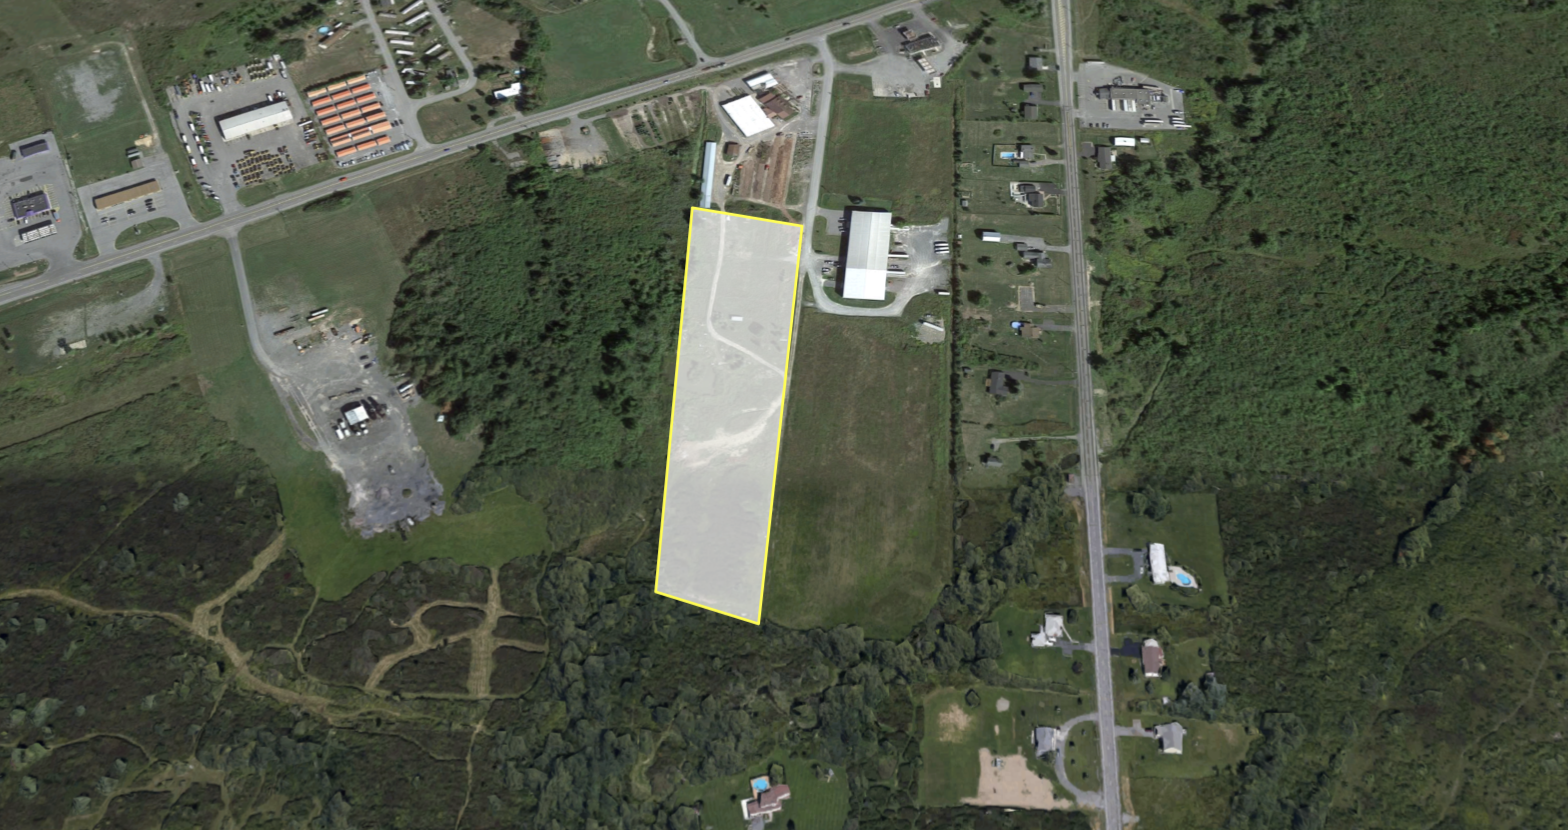 Investors Drive / Industrial Blvd., Pamelia, New York